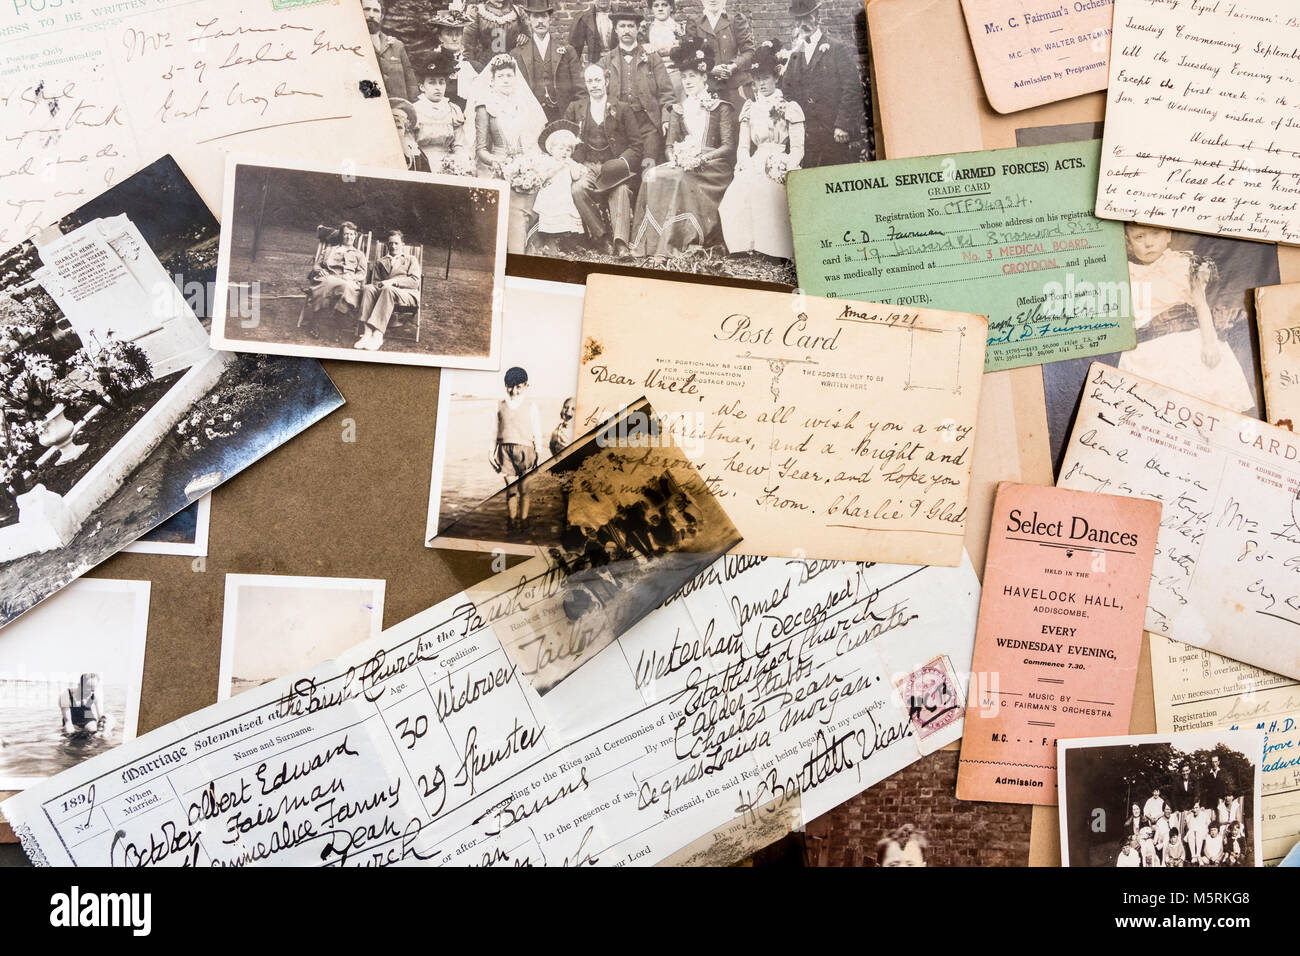 Genealogy and memorabilia. 1900-1920 Photographs, negatives, postcards, birth certificate, dance tickets, letters - Stock Image